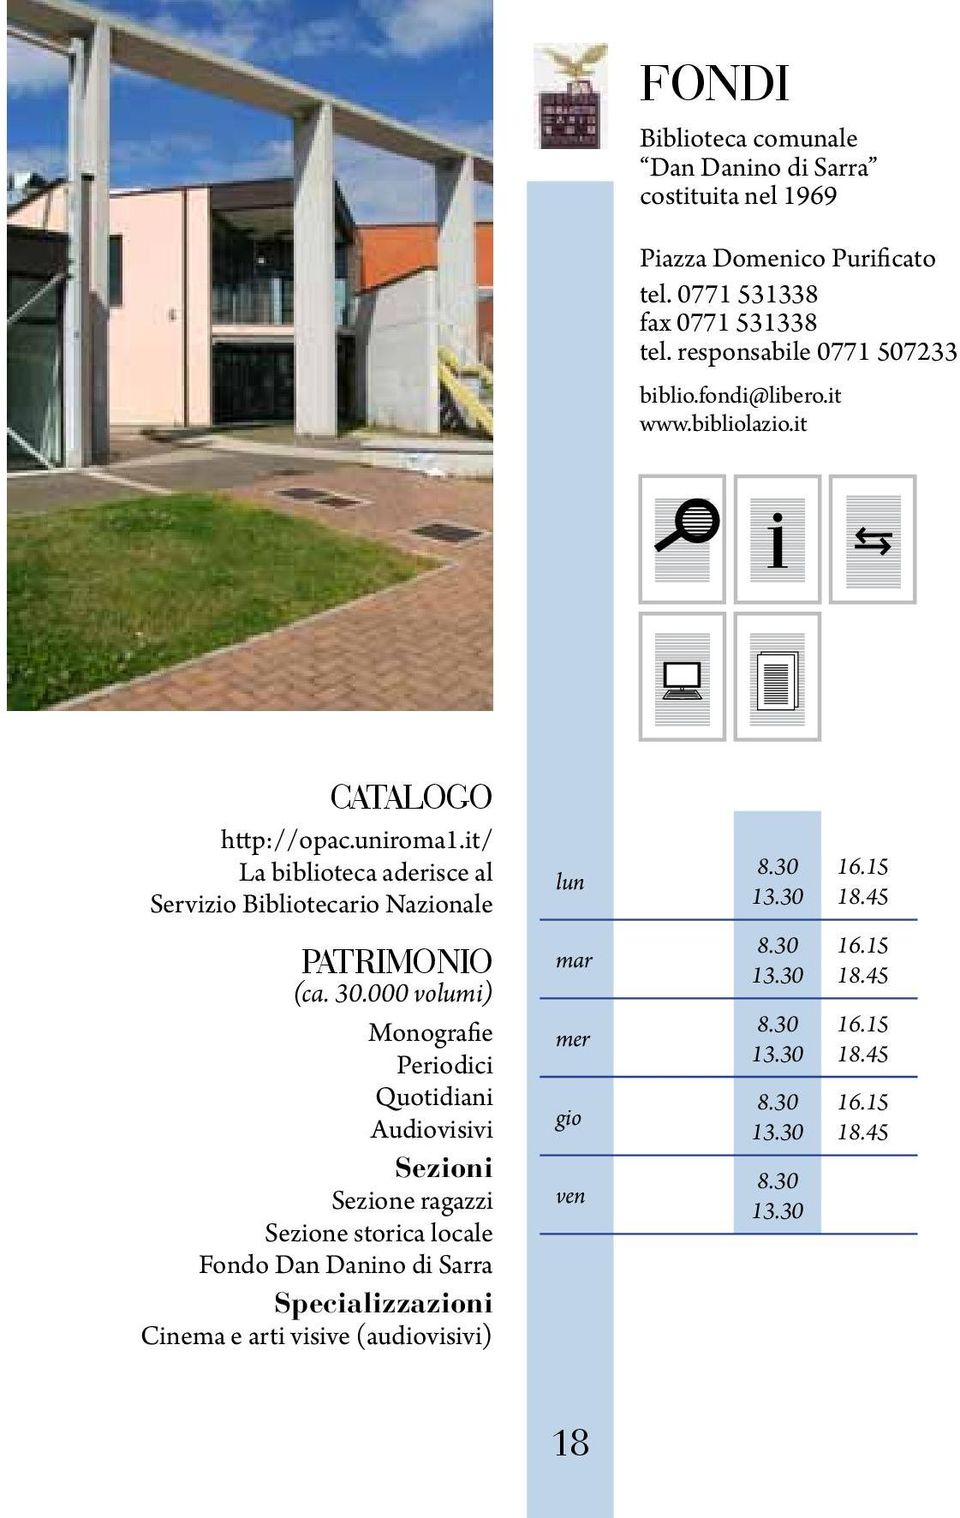 it http://opac.uniroma1.it/ 8.30 16.15 18.45 (ca. 30.